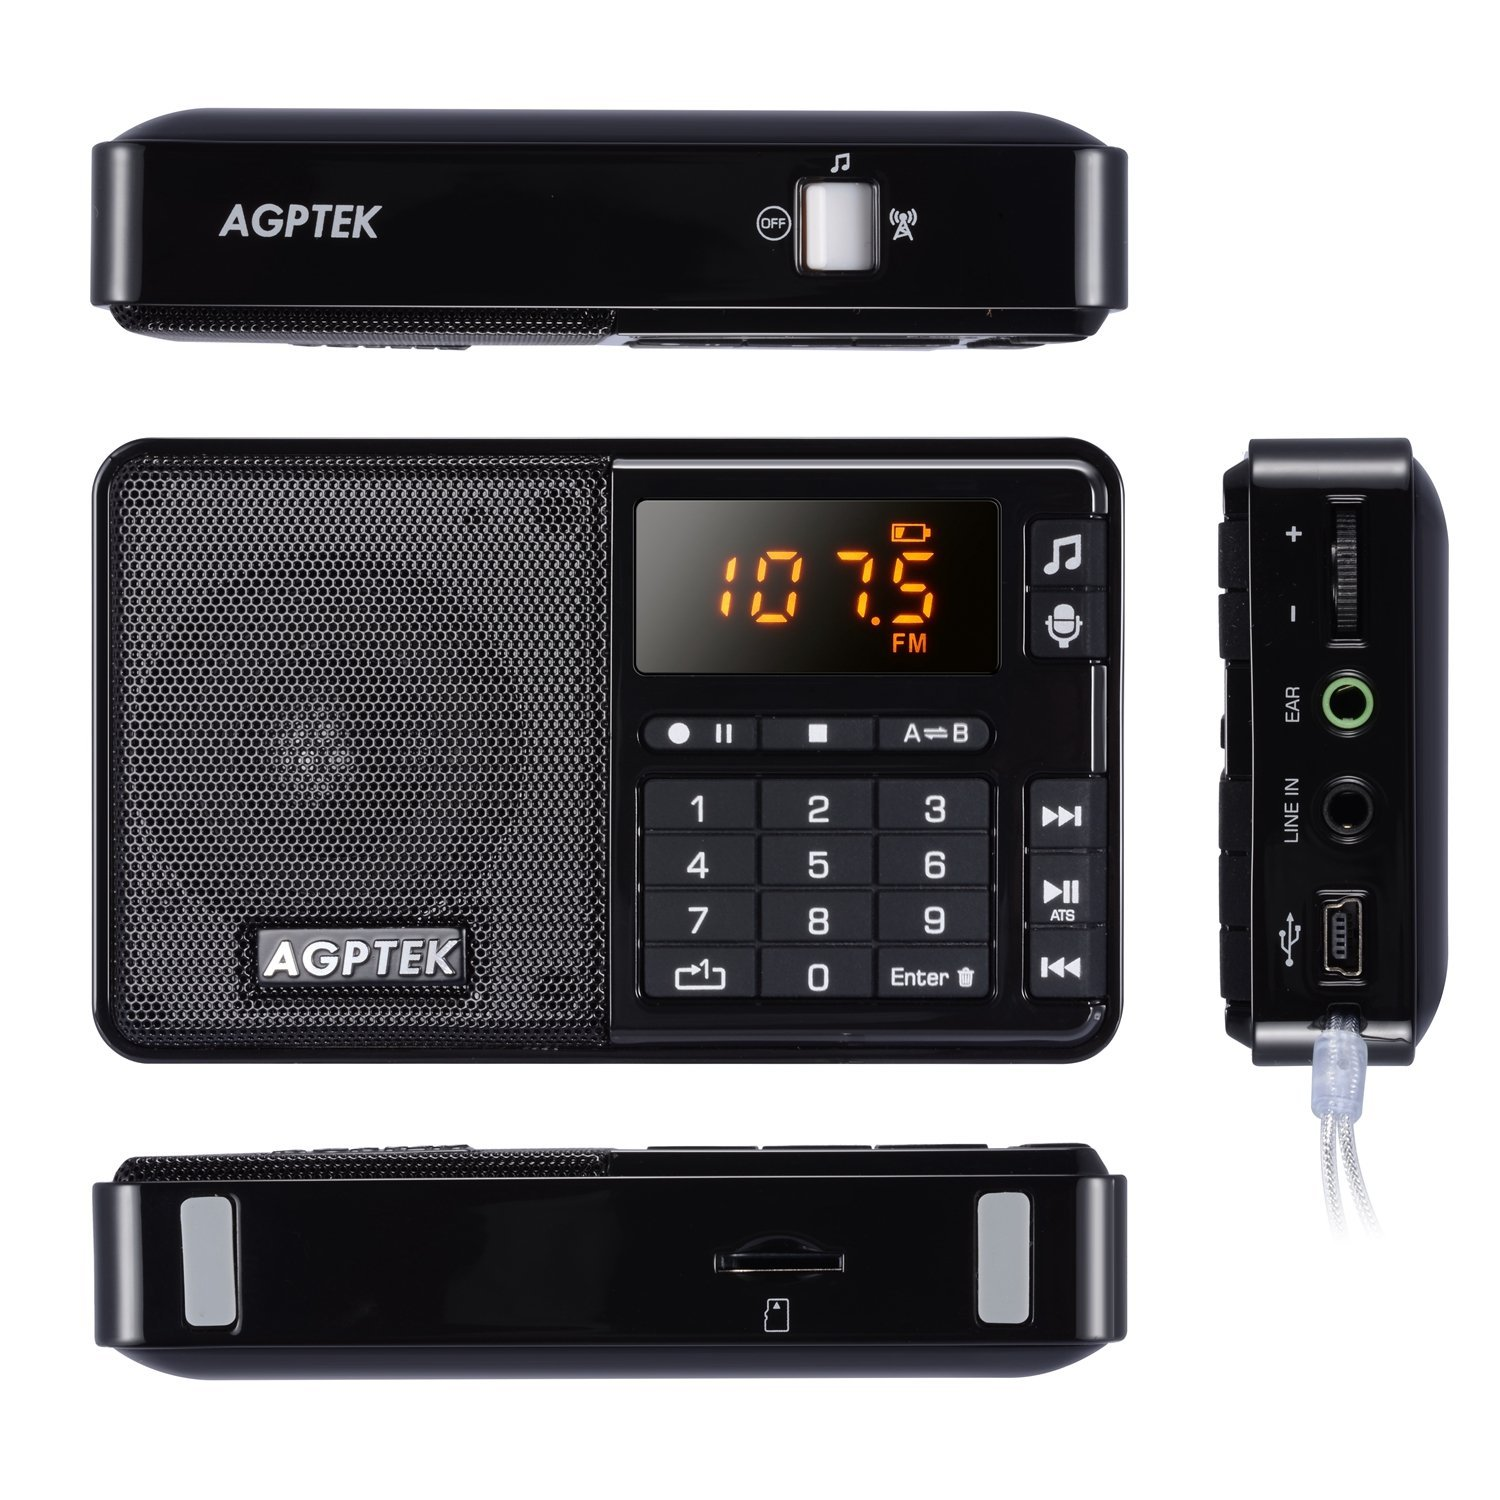 agptek mini r08 fm radio receiver rec recorder mp3 player rechargeable black new ebay. Black Bedroom Furniture Sets. Home Design Ideas